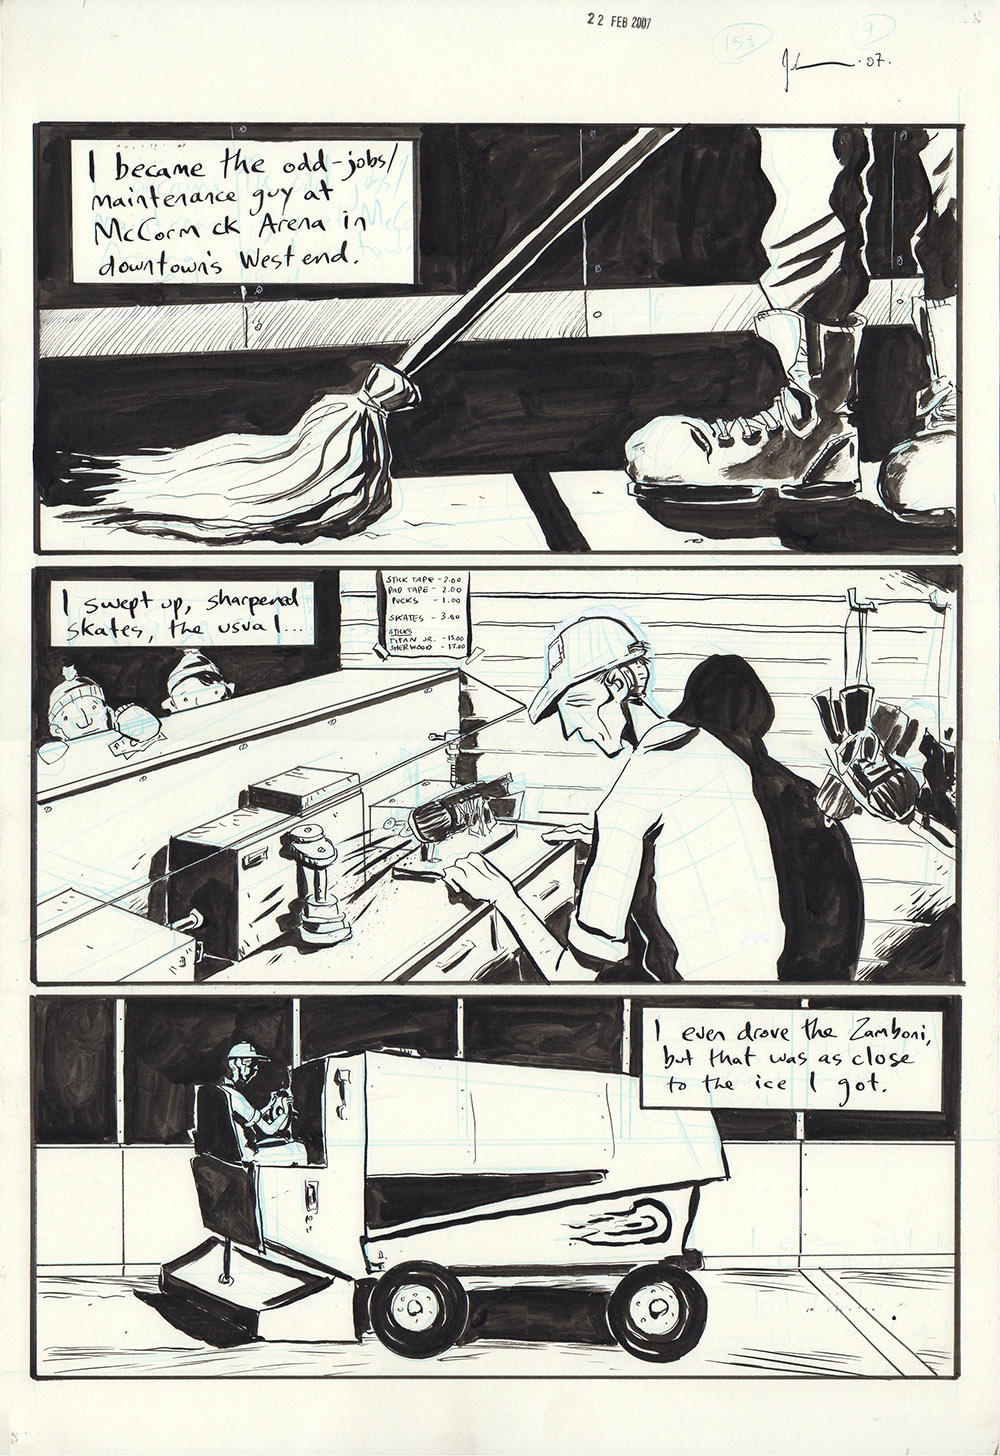 Essex County Book 2: Ghost Stories - page 279